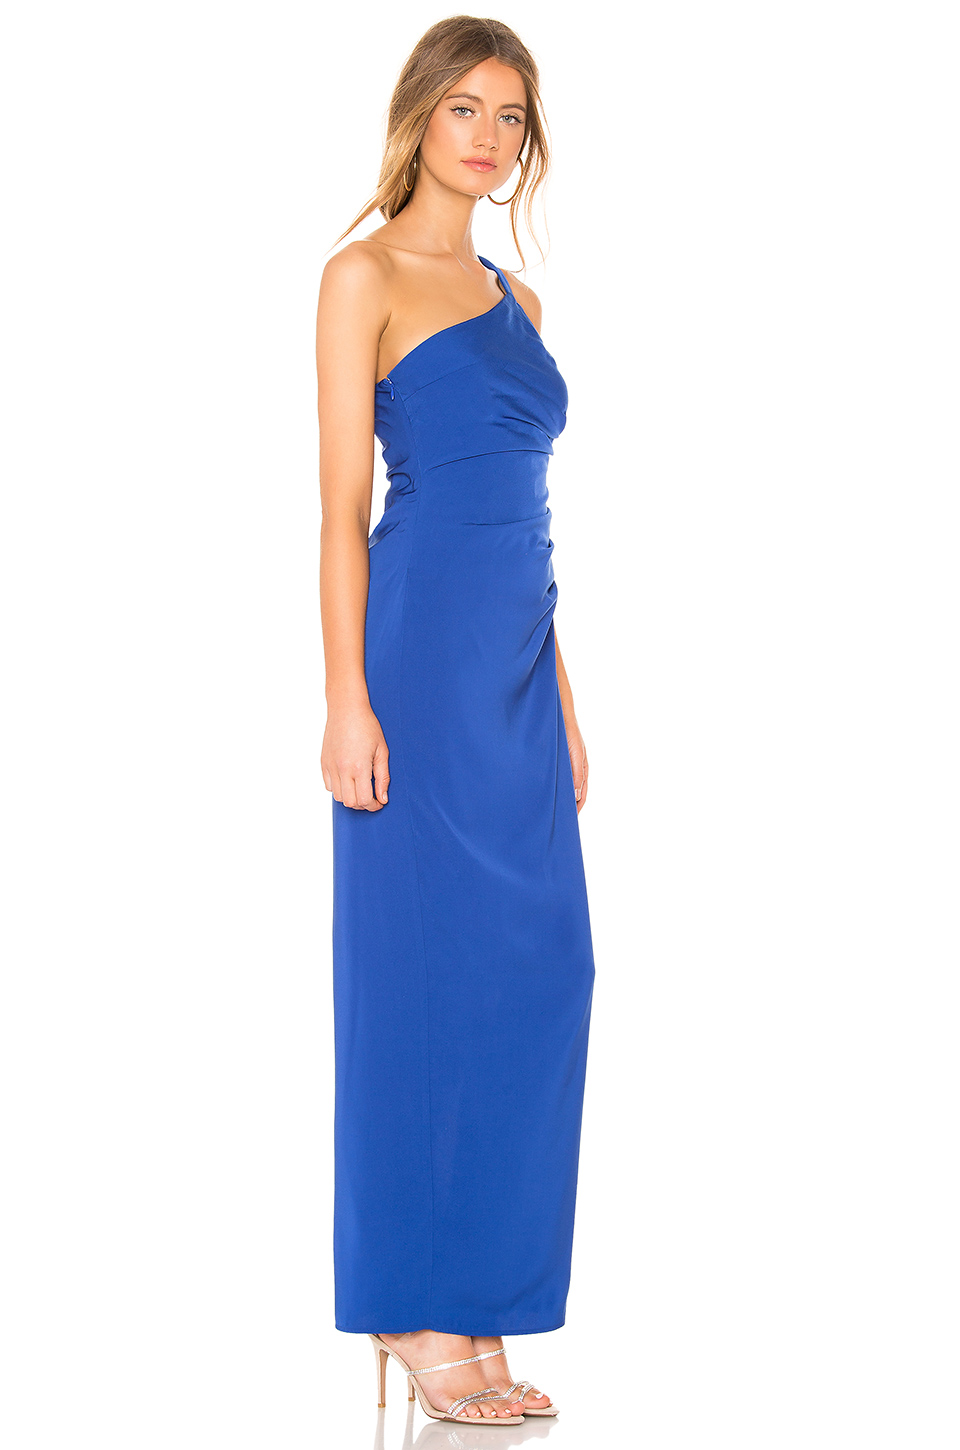 72d3fedf31c Buy Original by the way. Norah Ruched Asymmetric Maxi Dress at ...